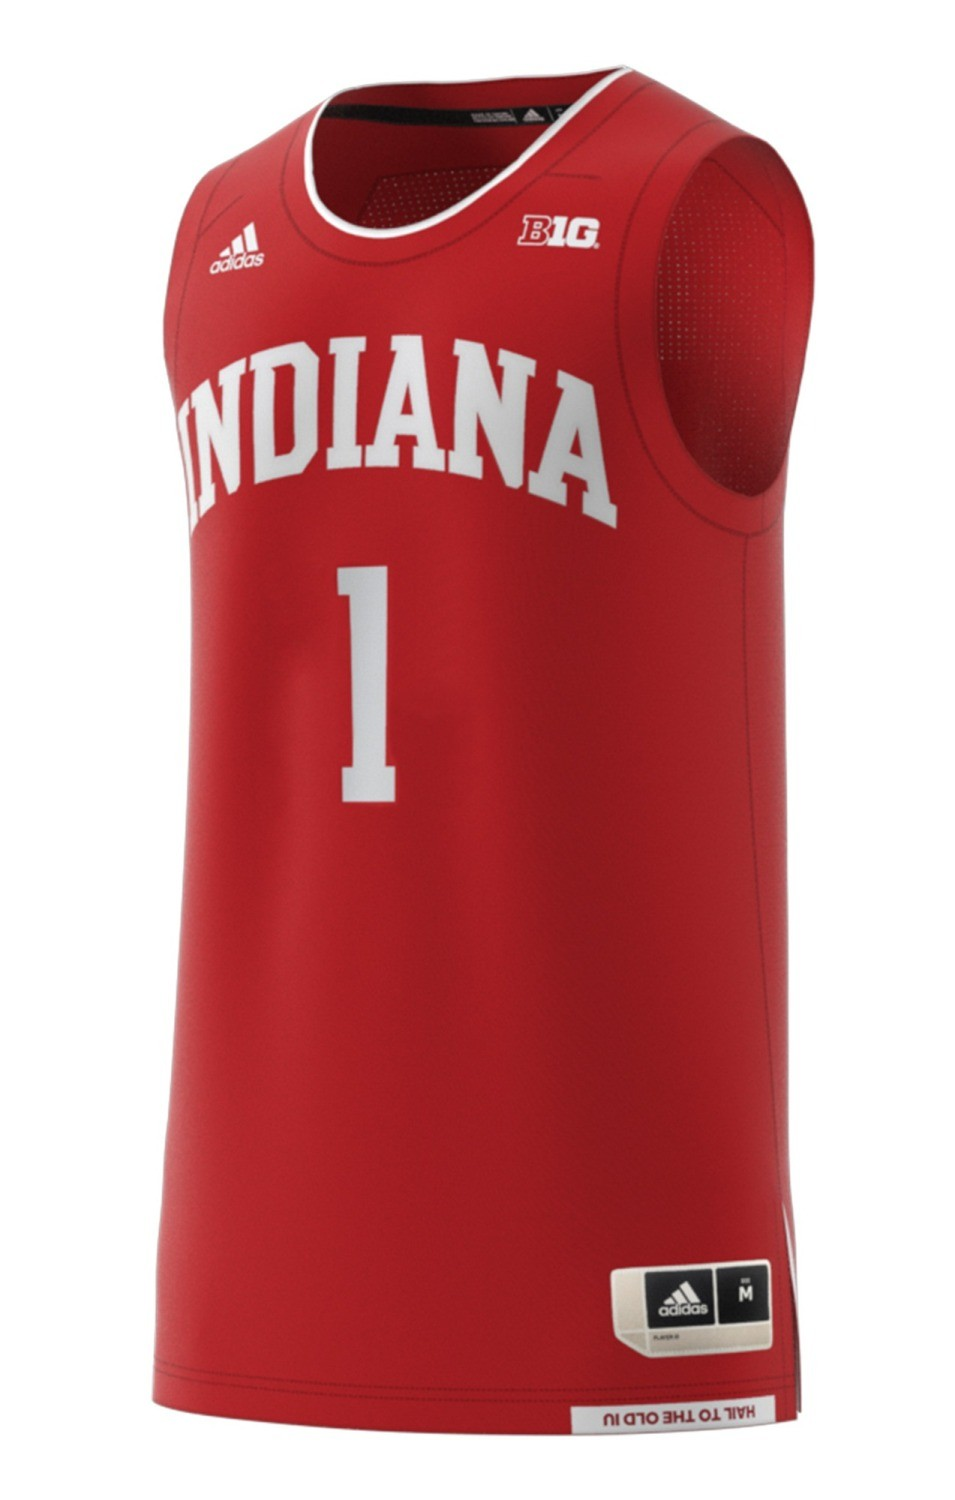 on sale 40c2b c6df3 Indiana Hoosiers Adidas NCAA Men's Swingman Basketball Jersey